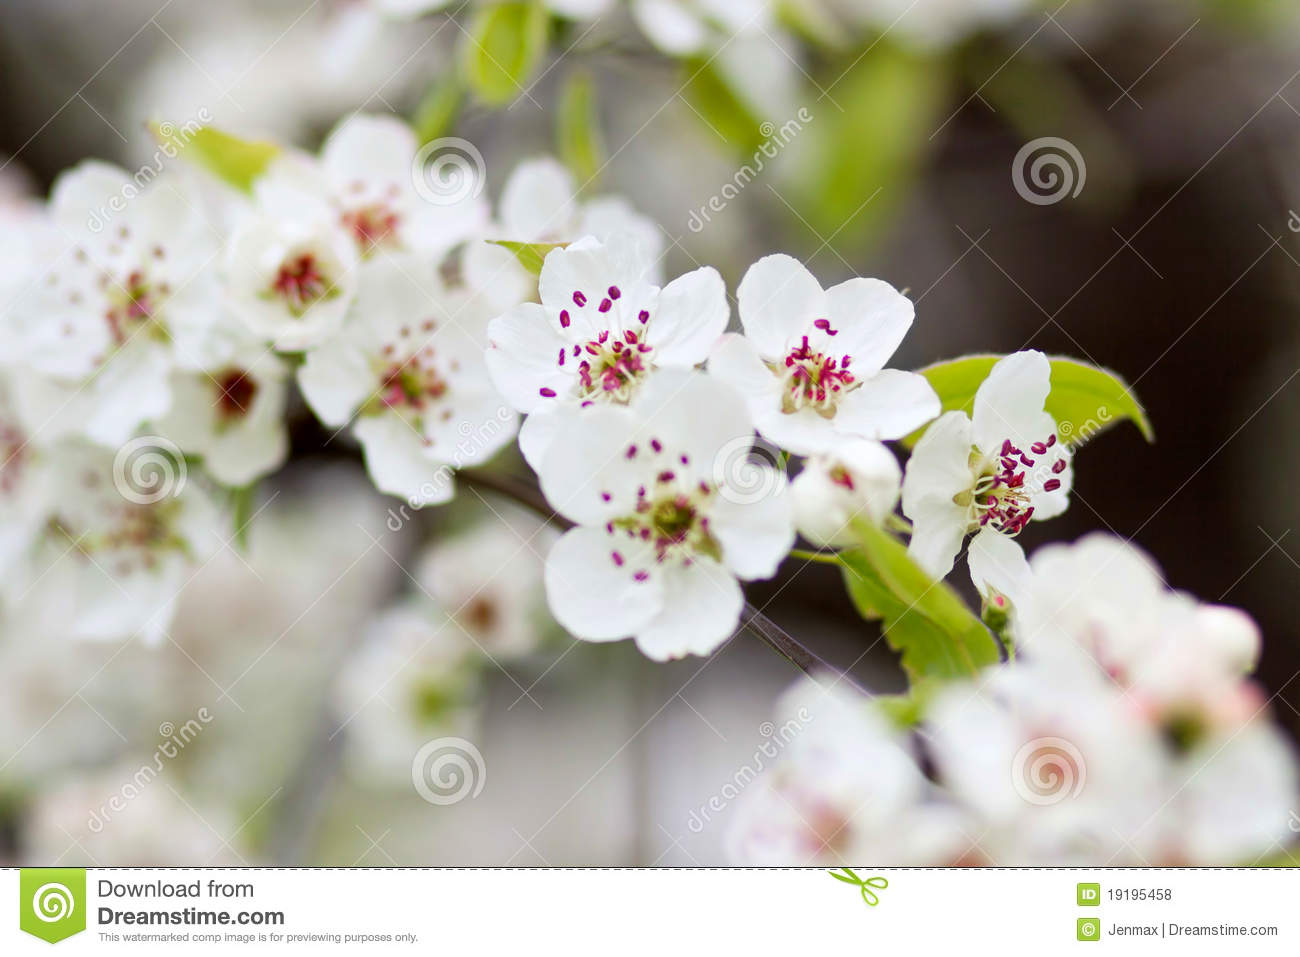 Blooming tree in spring with white flowers royalty free stock photos